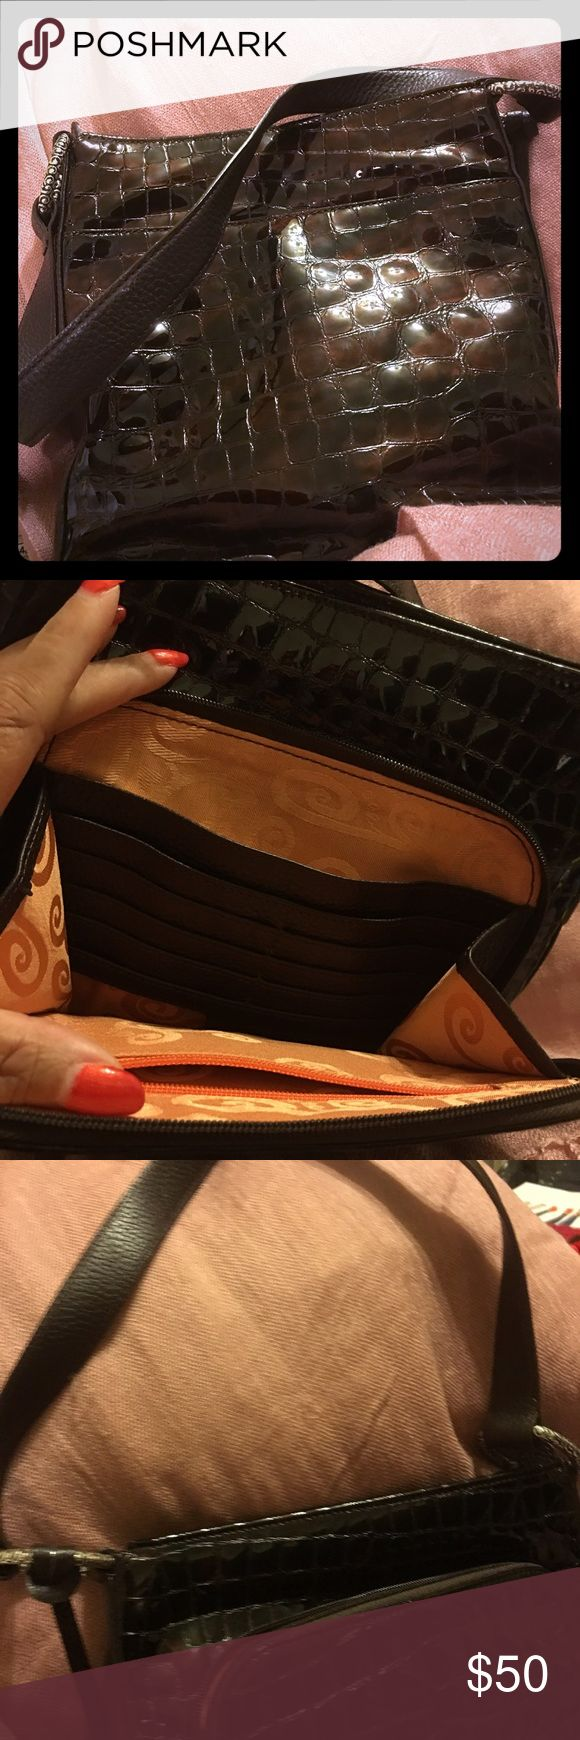 Authentic Brighton Purse Genuine leather croc bag. Dark brown with short strap.  Clean inside.  No signs of wear inside or out.  Outside wallet organizer Brighton Bags Shoulder Bags